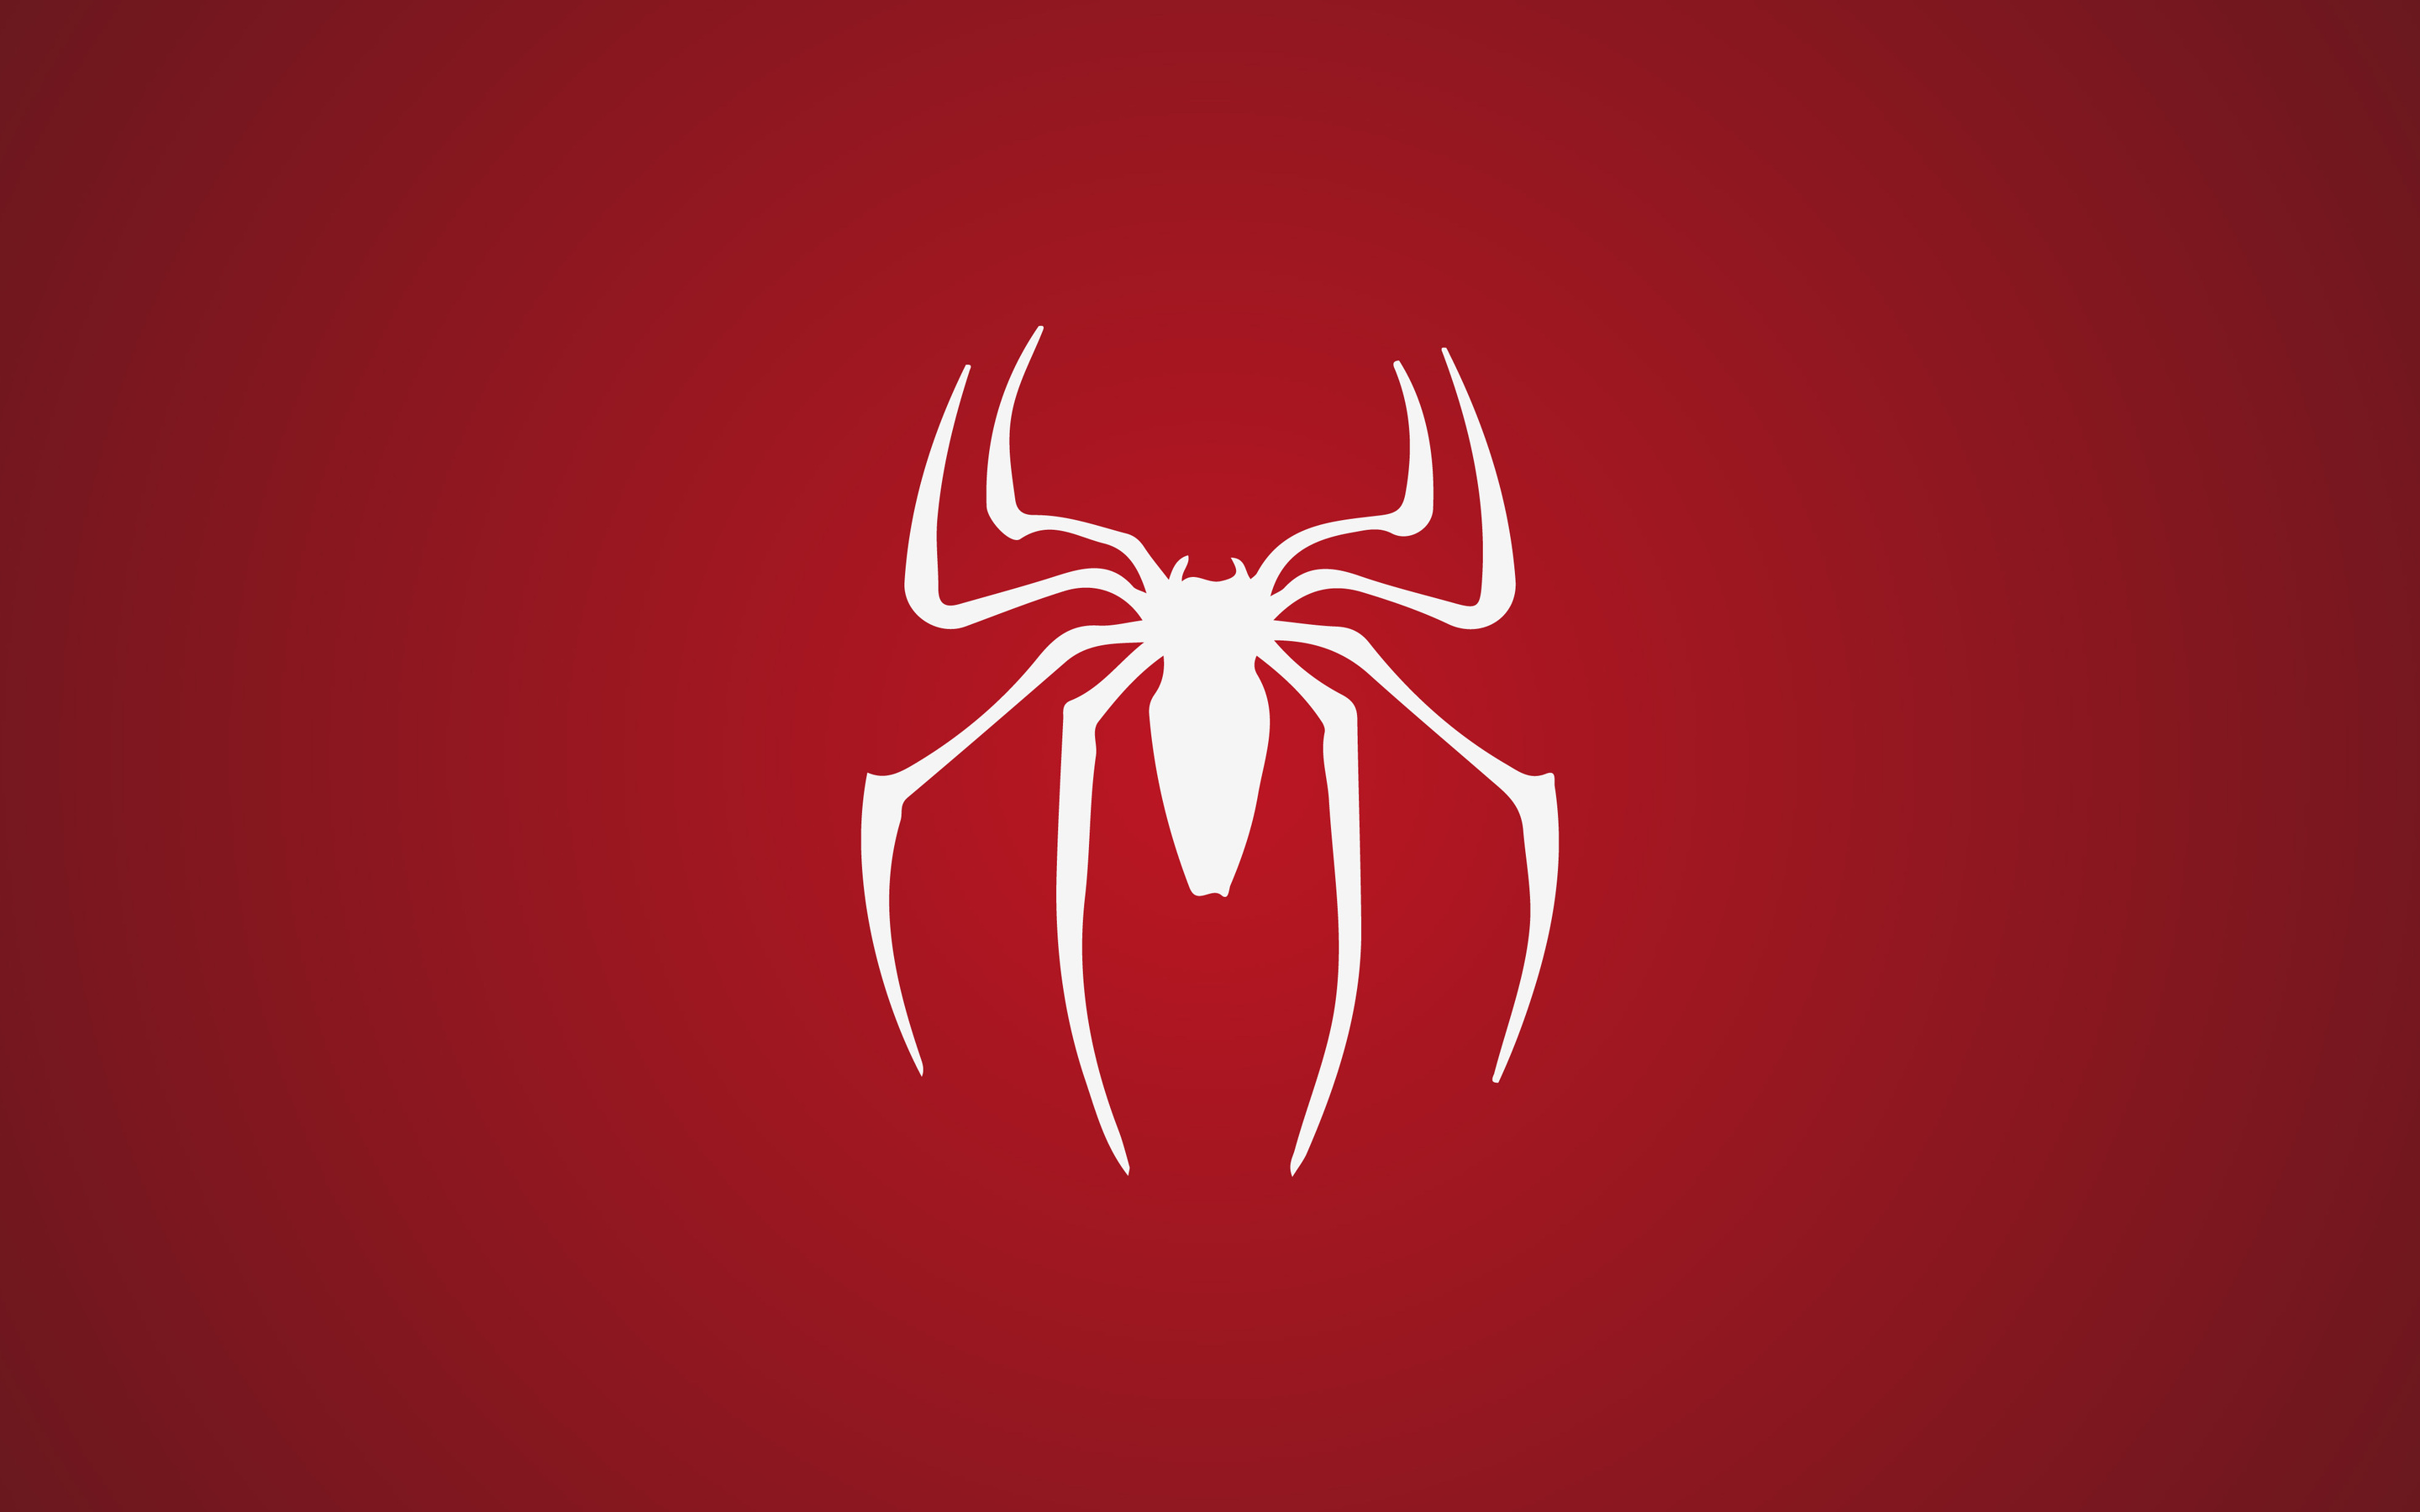 2880x1800 Spiderman Logo 4k Macbook Pro Retina HD 4k Wallpapers